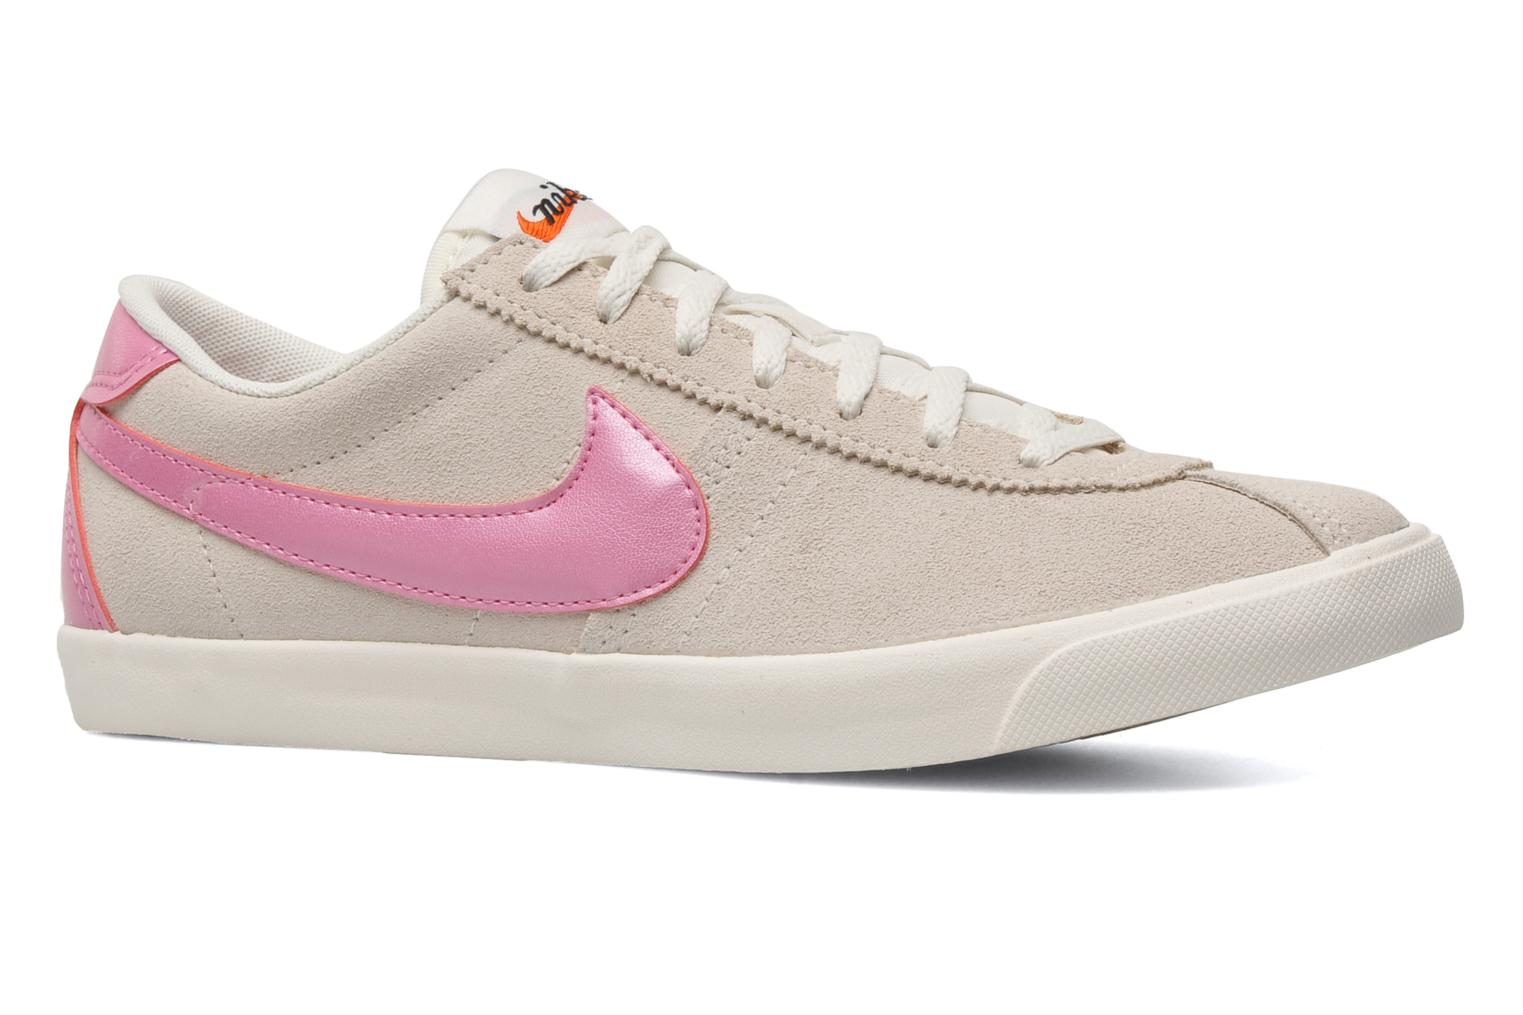 Wmns Nike Bruin Lite Suede Sail/Red Violet-Sail